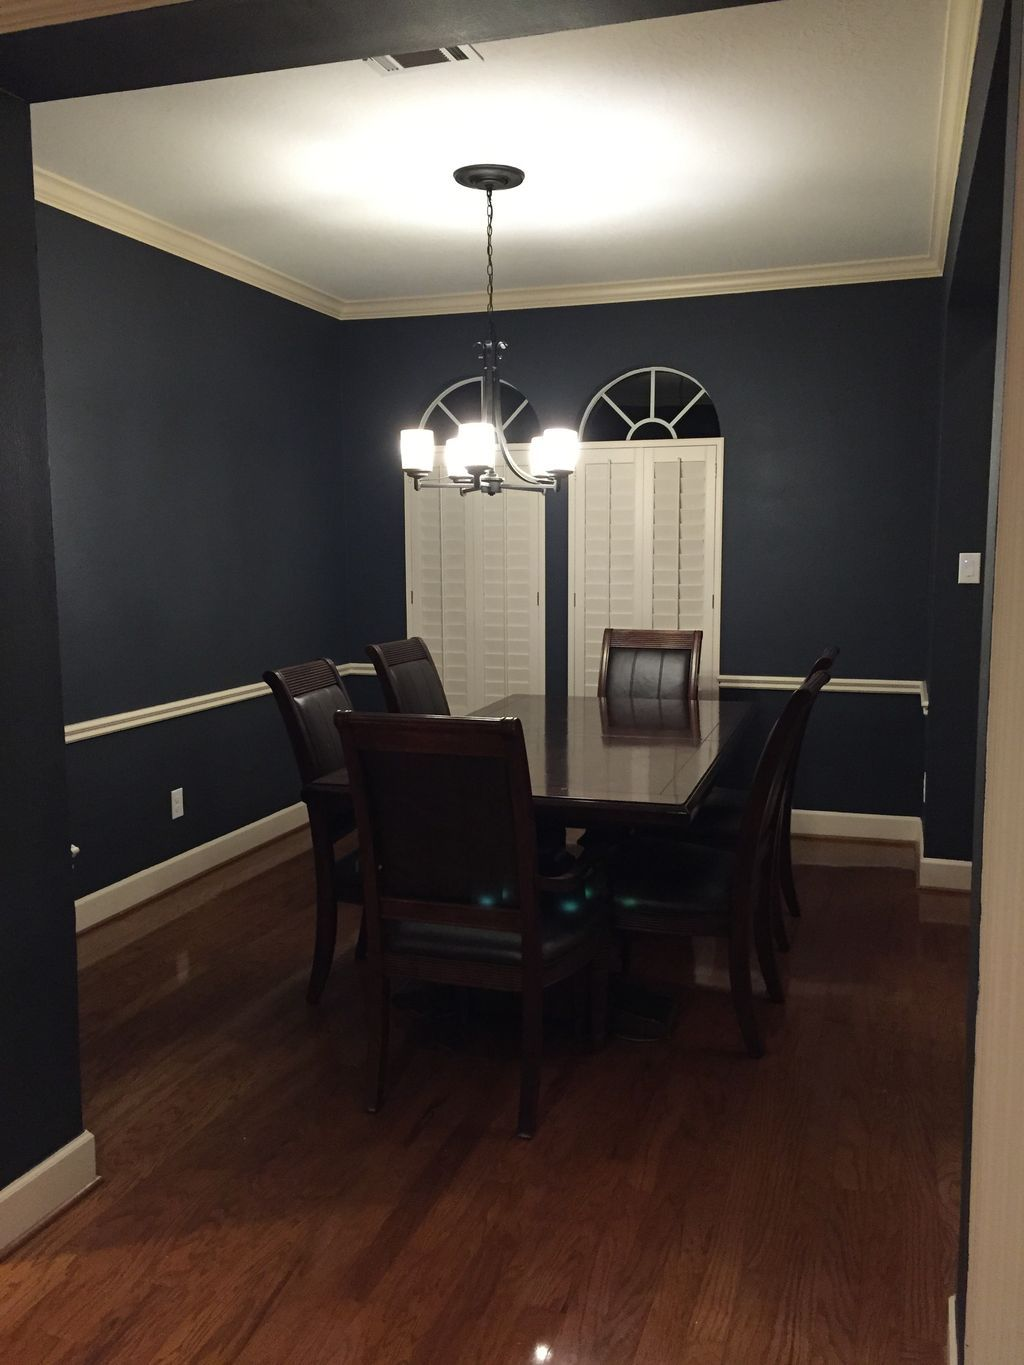 42 Sherwin Williams Cyberspace Paint Color That Will Last Through Any Trend Color Is A Significant Media Room Paint Colors Media Room Colors Dark Interiors